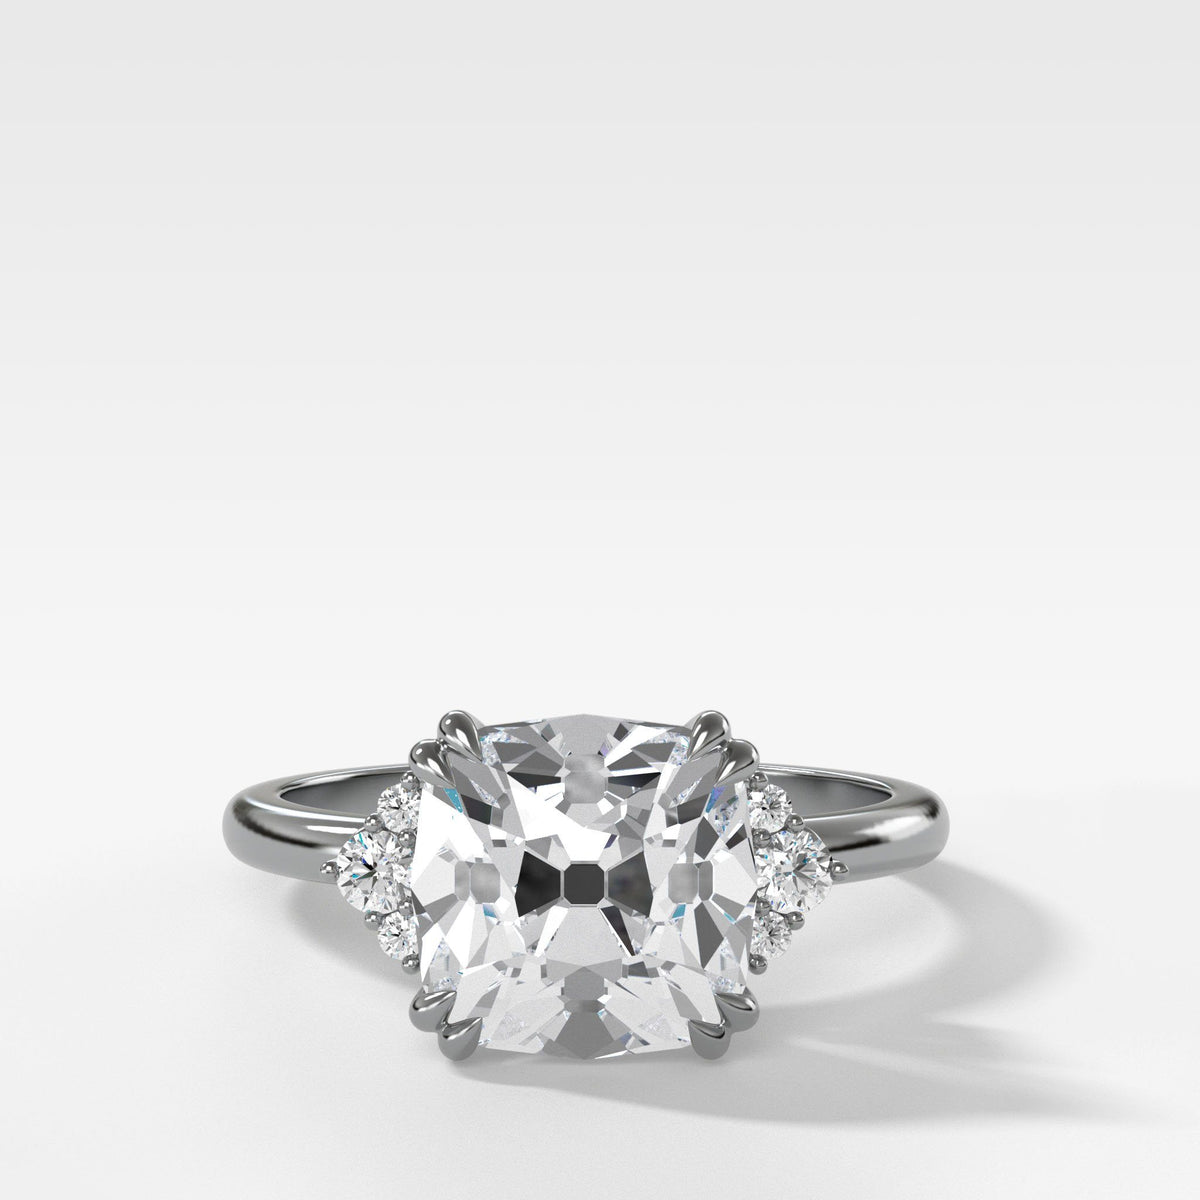 Signature Cluster Engagement Ring With Old Mine Cut In White Gold By Good Stone